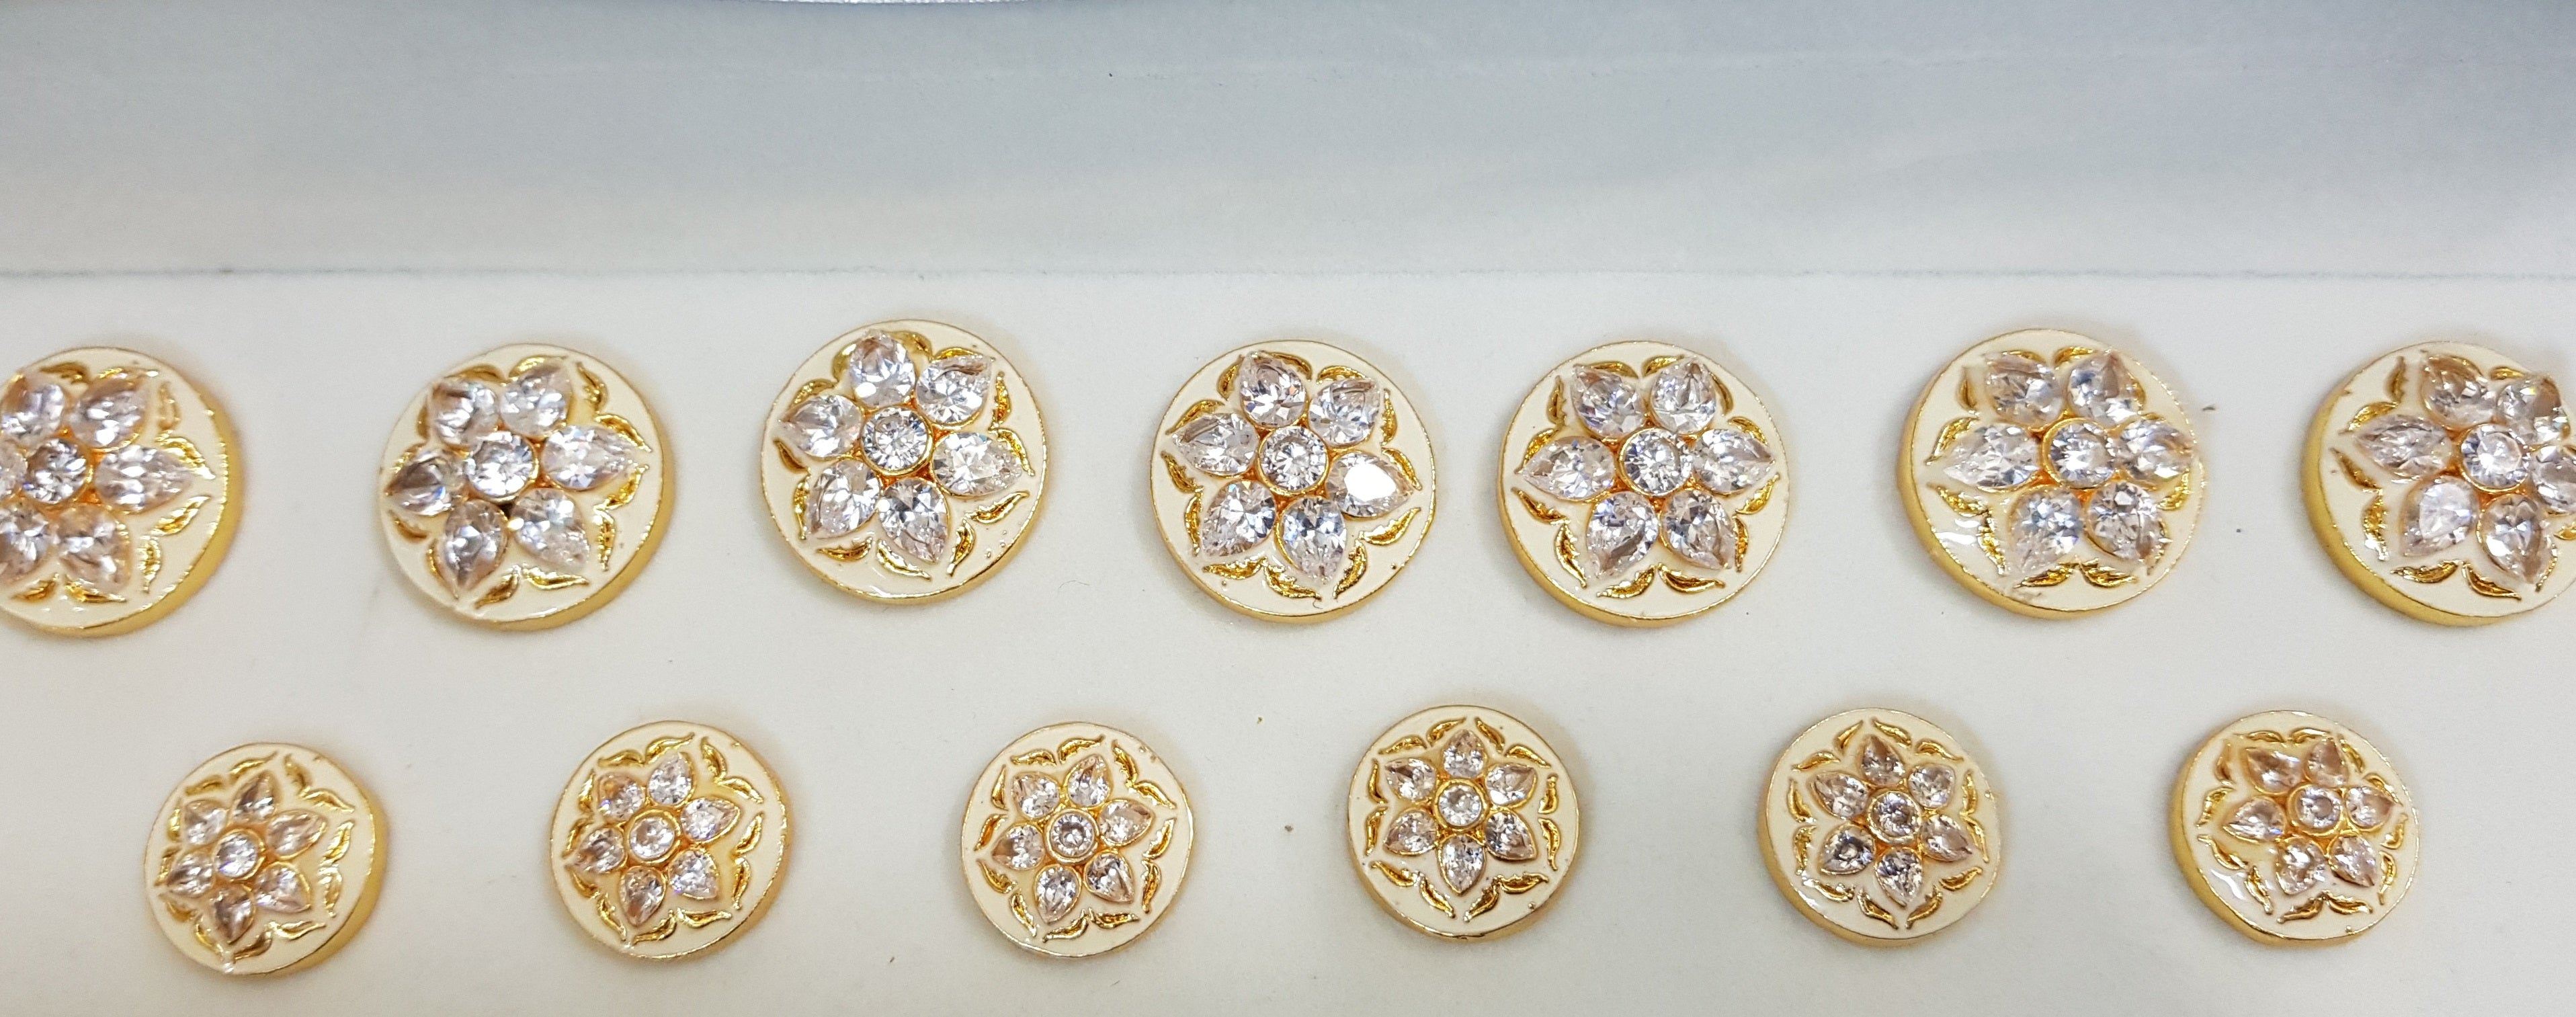 White Stone Flower Buttons with Off-White Enamel